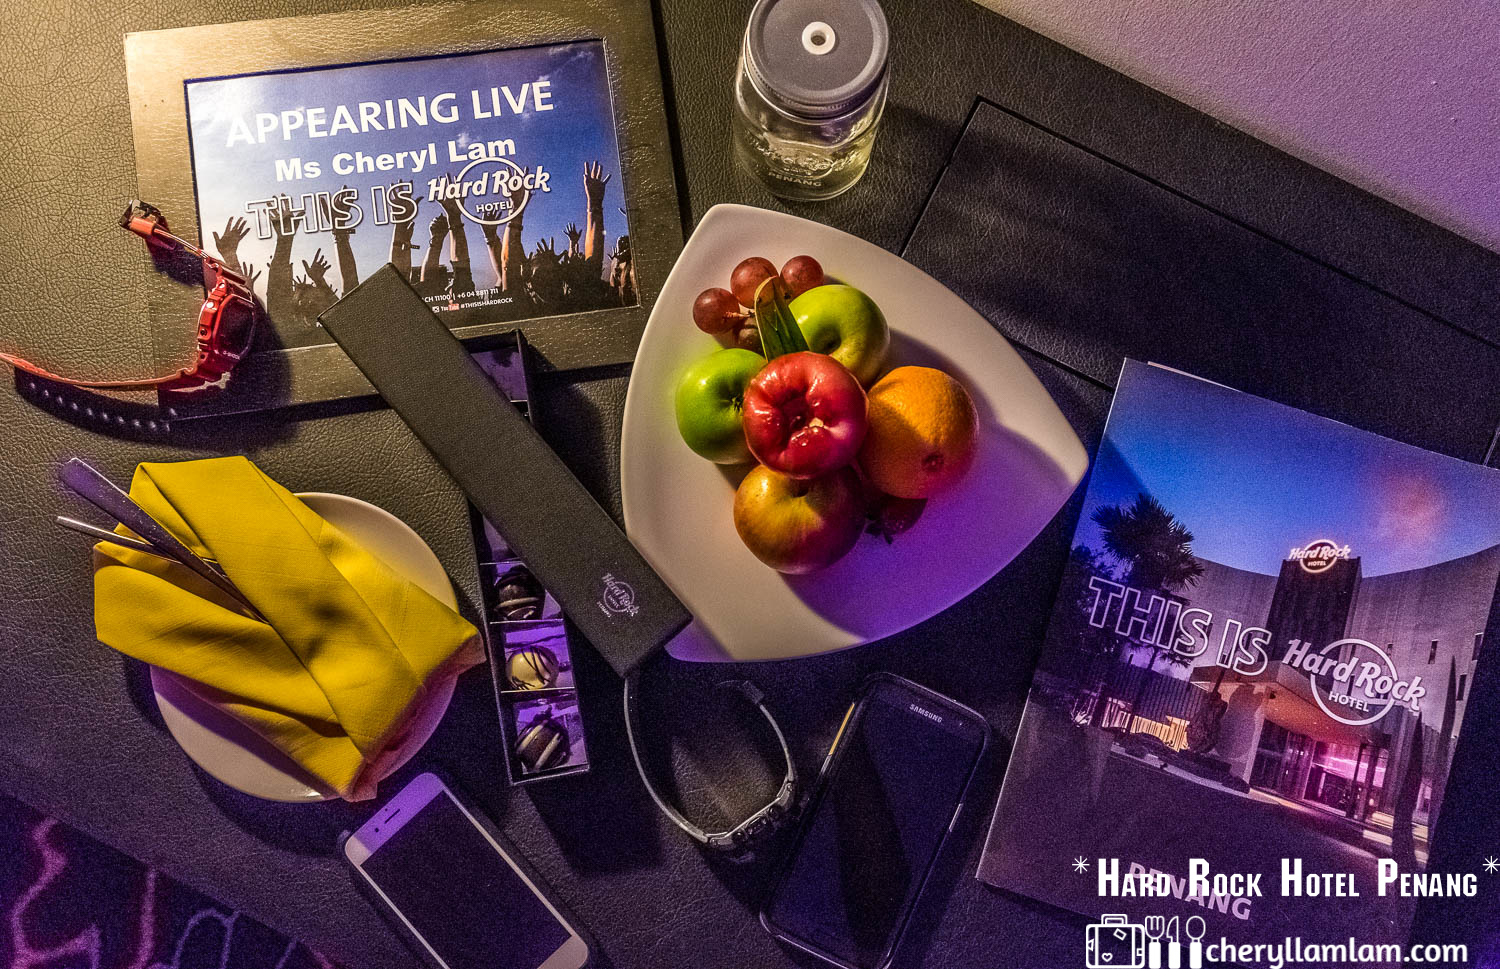 Thank you Hard Rock Hotel Penang for the welcome gifts! :)